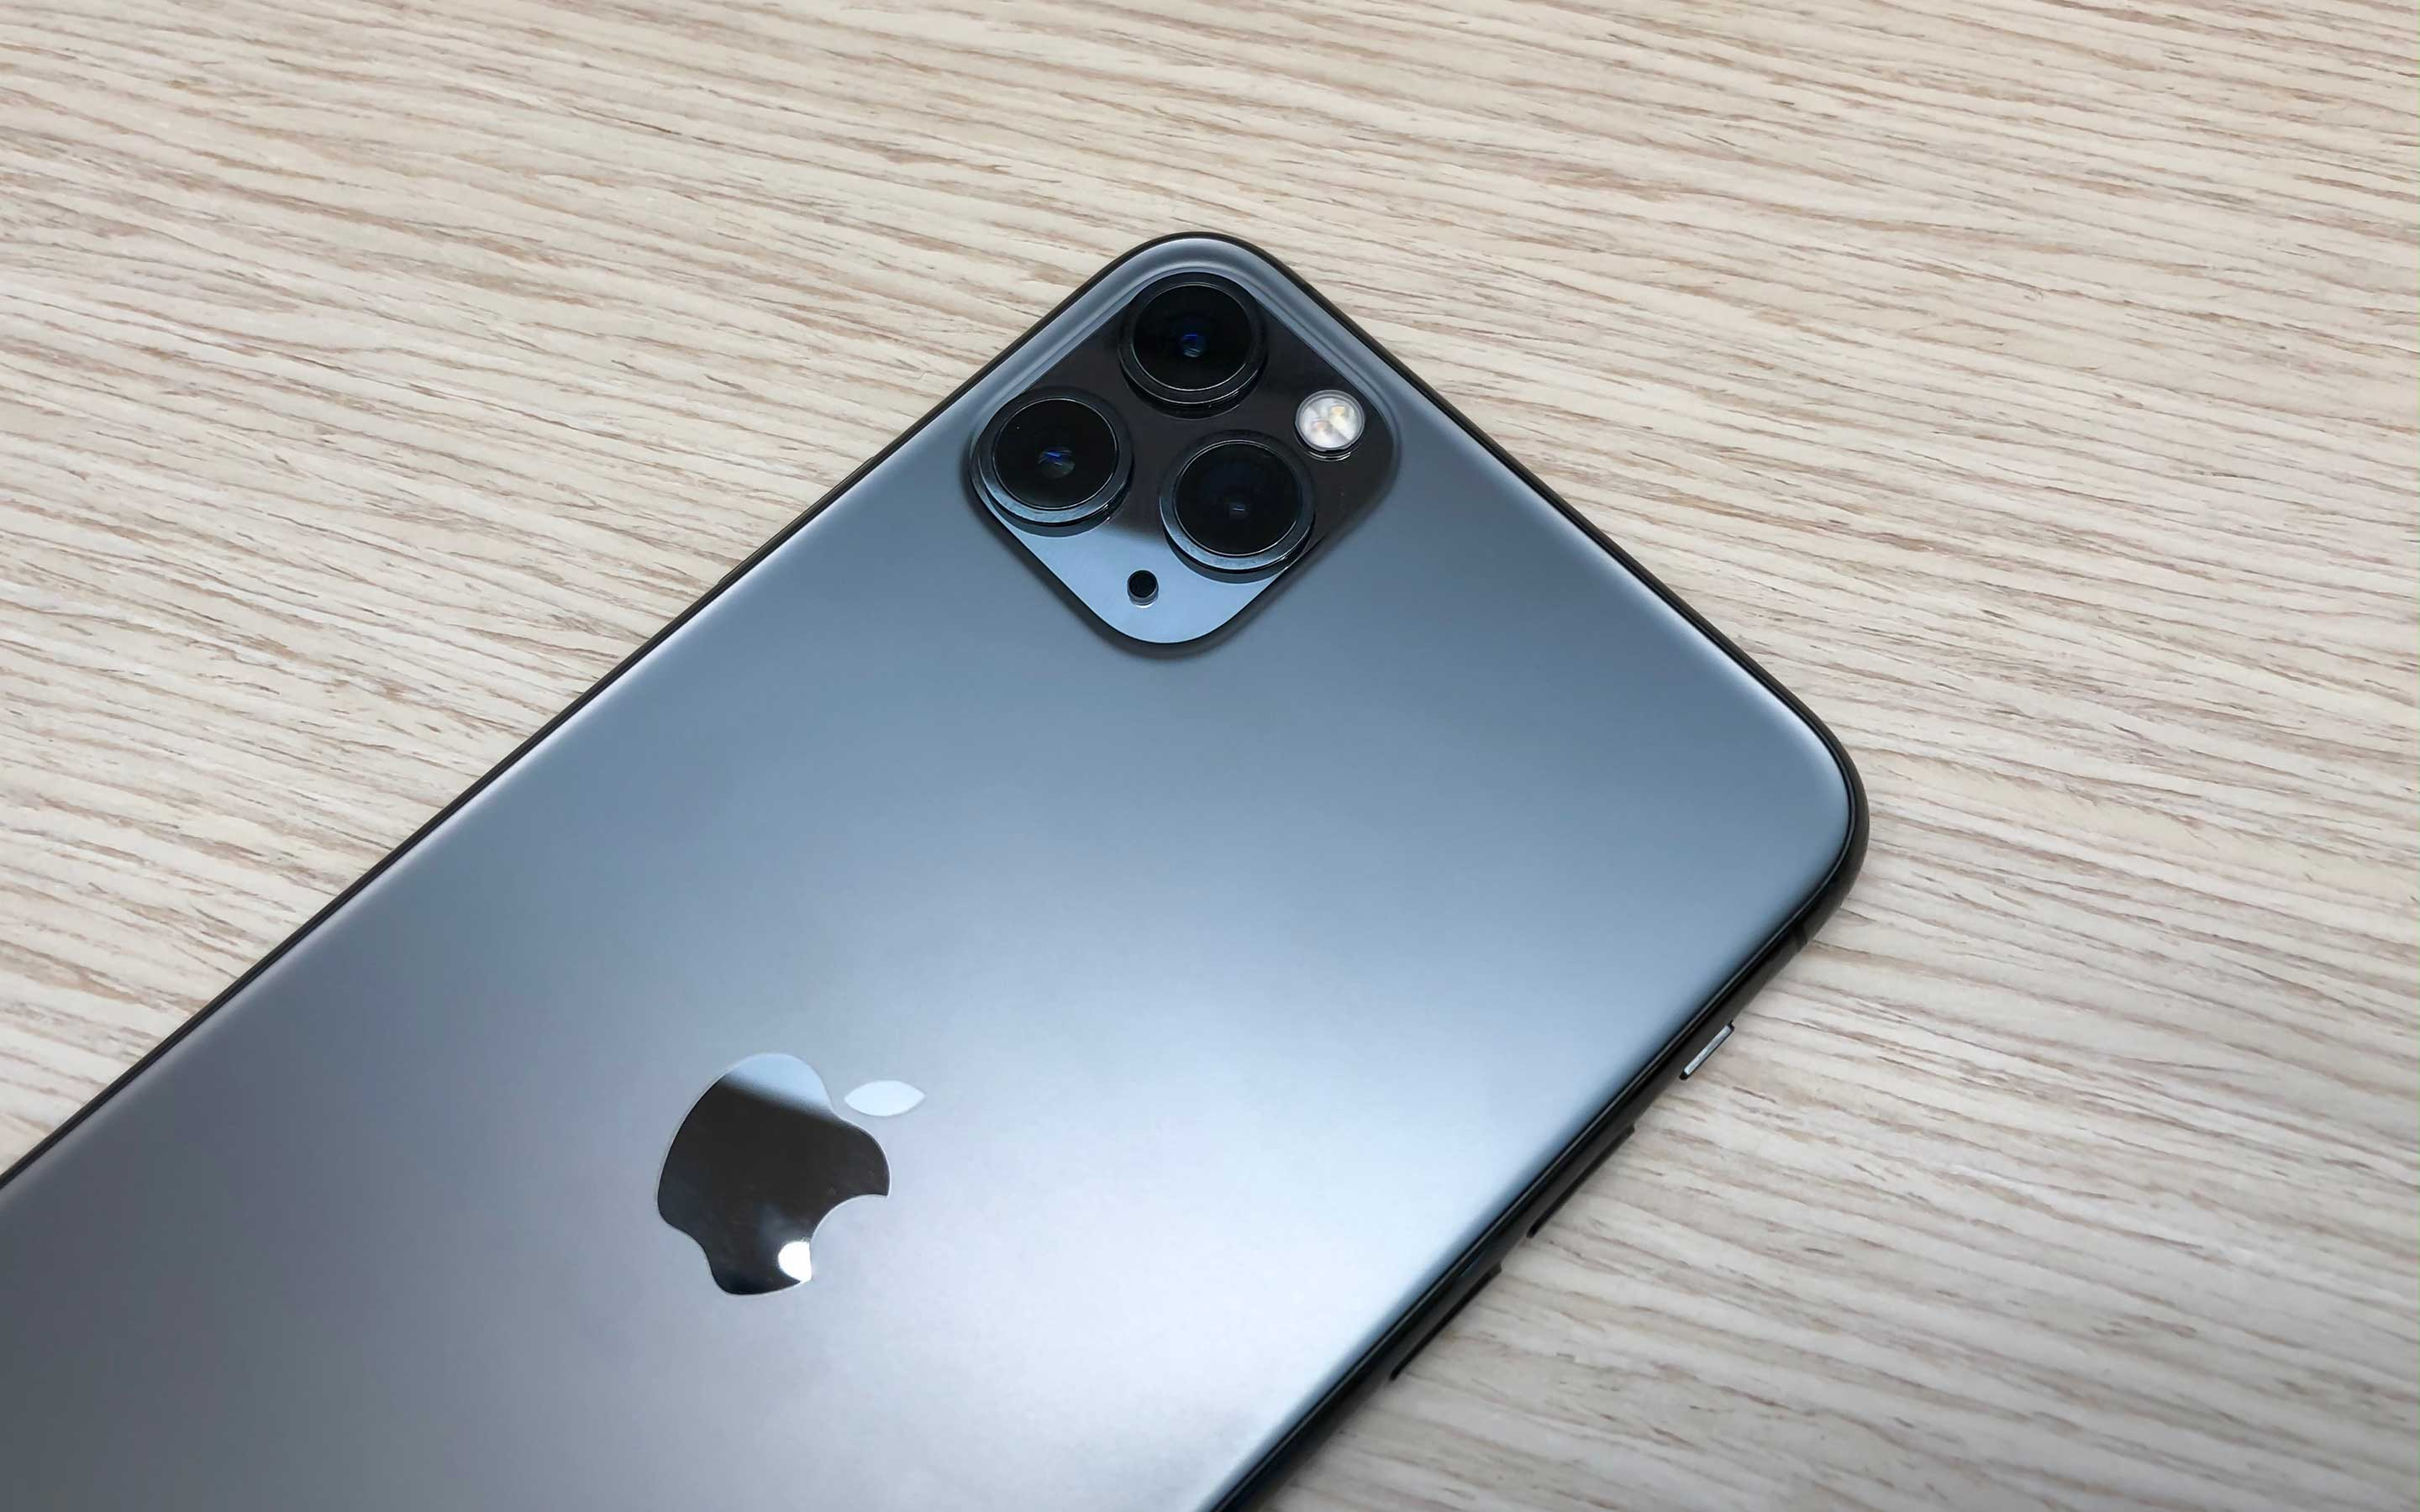 Why You Should Stay Away From iPhone 11 Pro Accessories